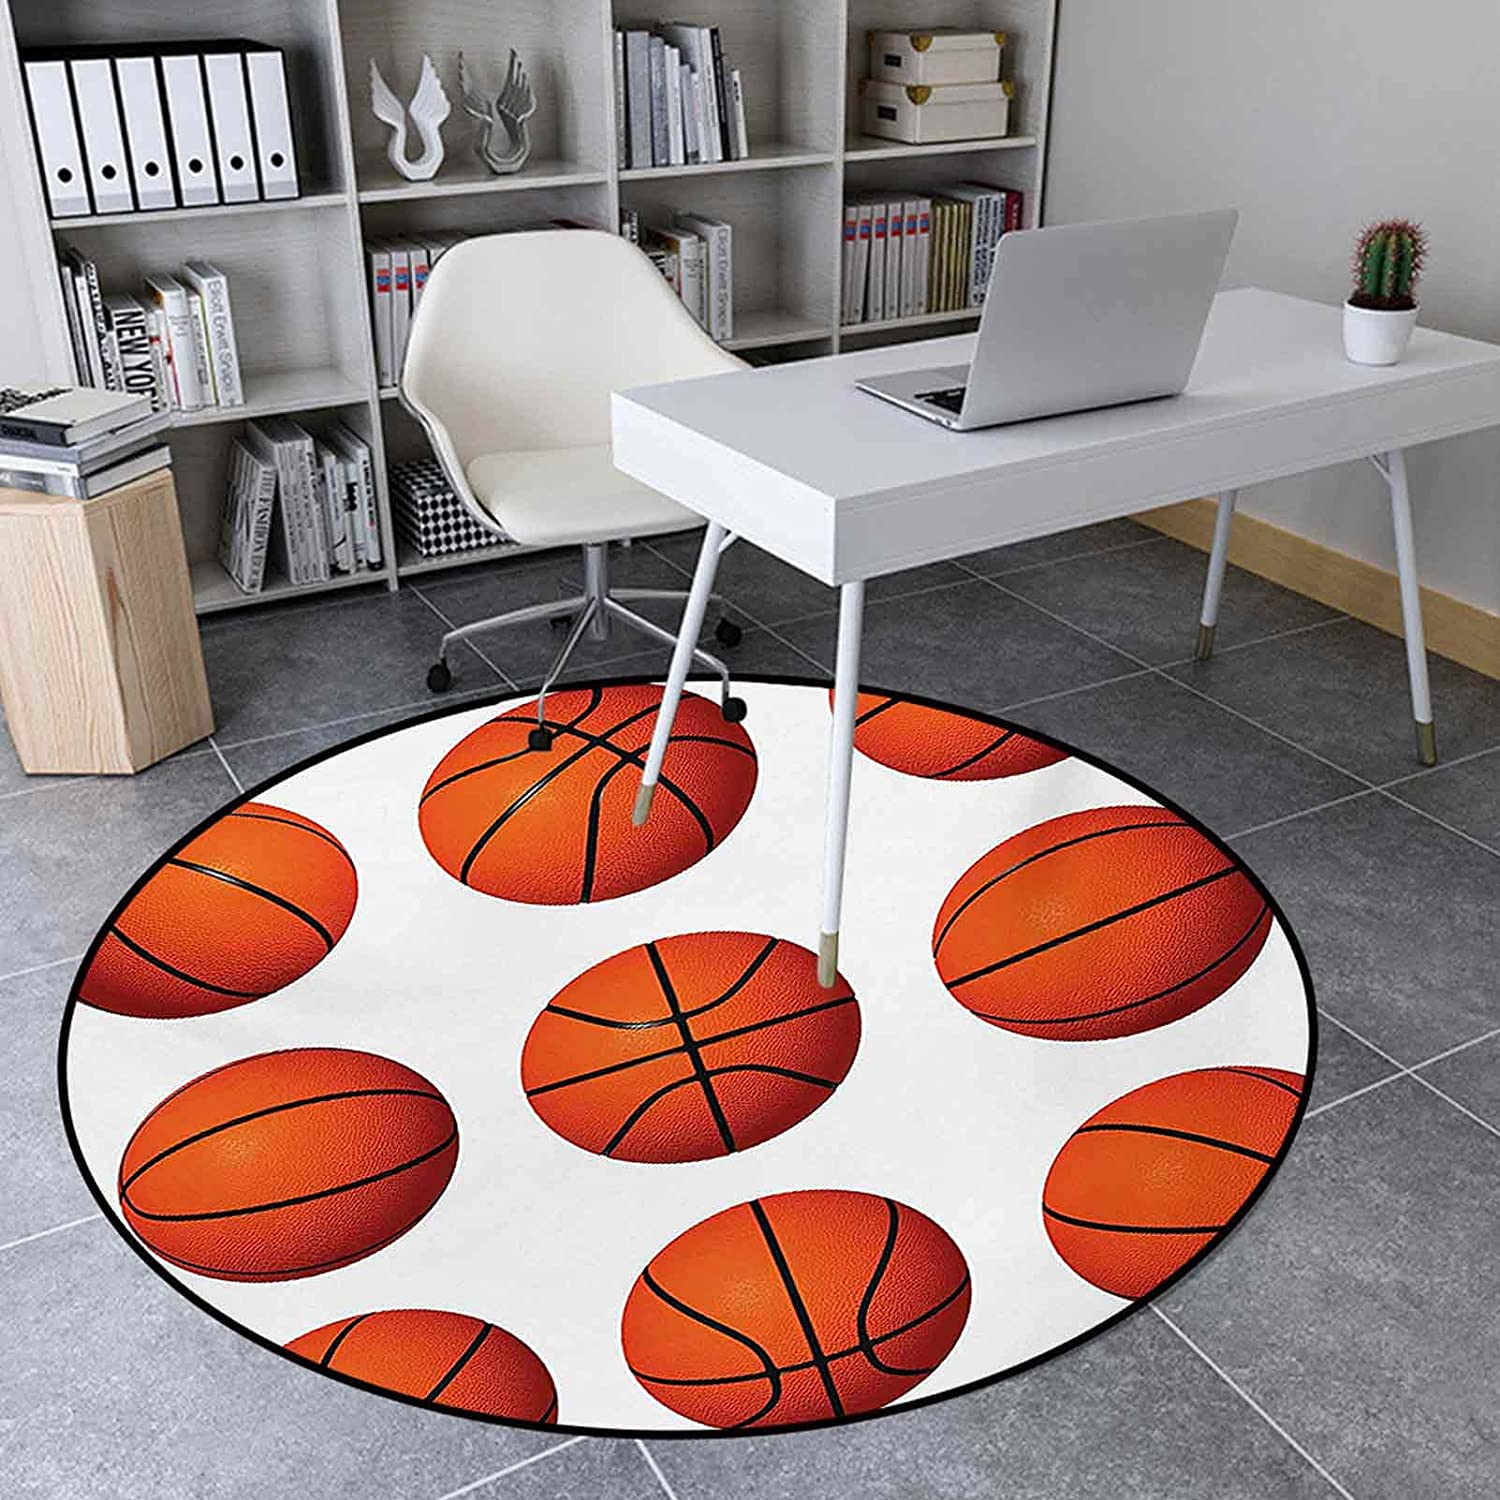 Area Rug wholesale Round 4.6' Non-Slip Outlet SALE Di Room Living Mat for